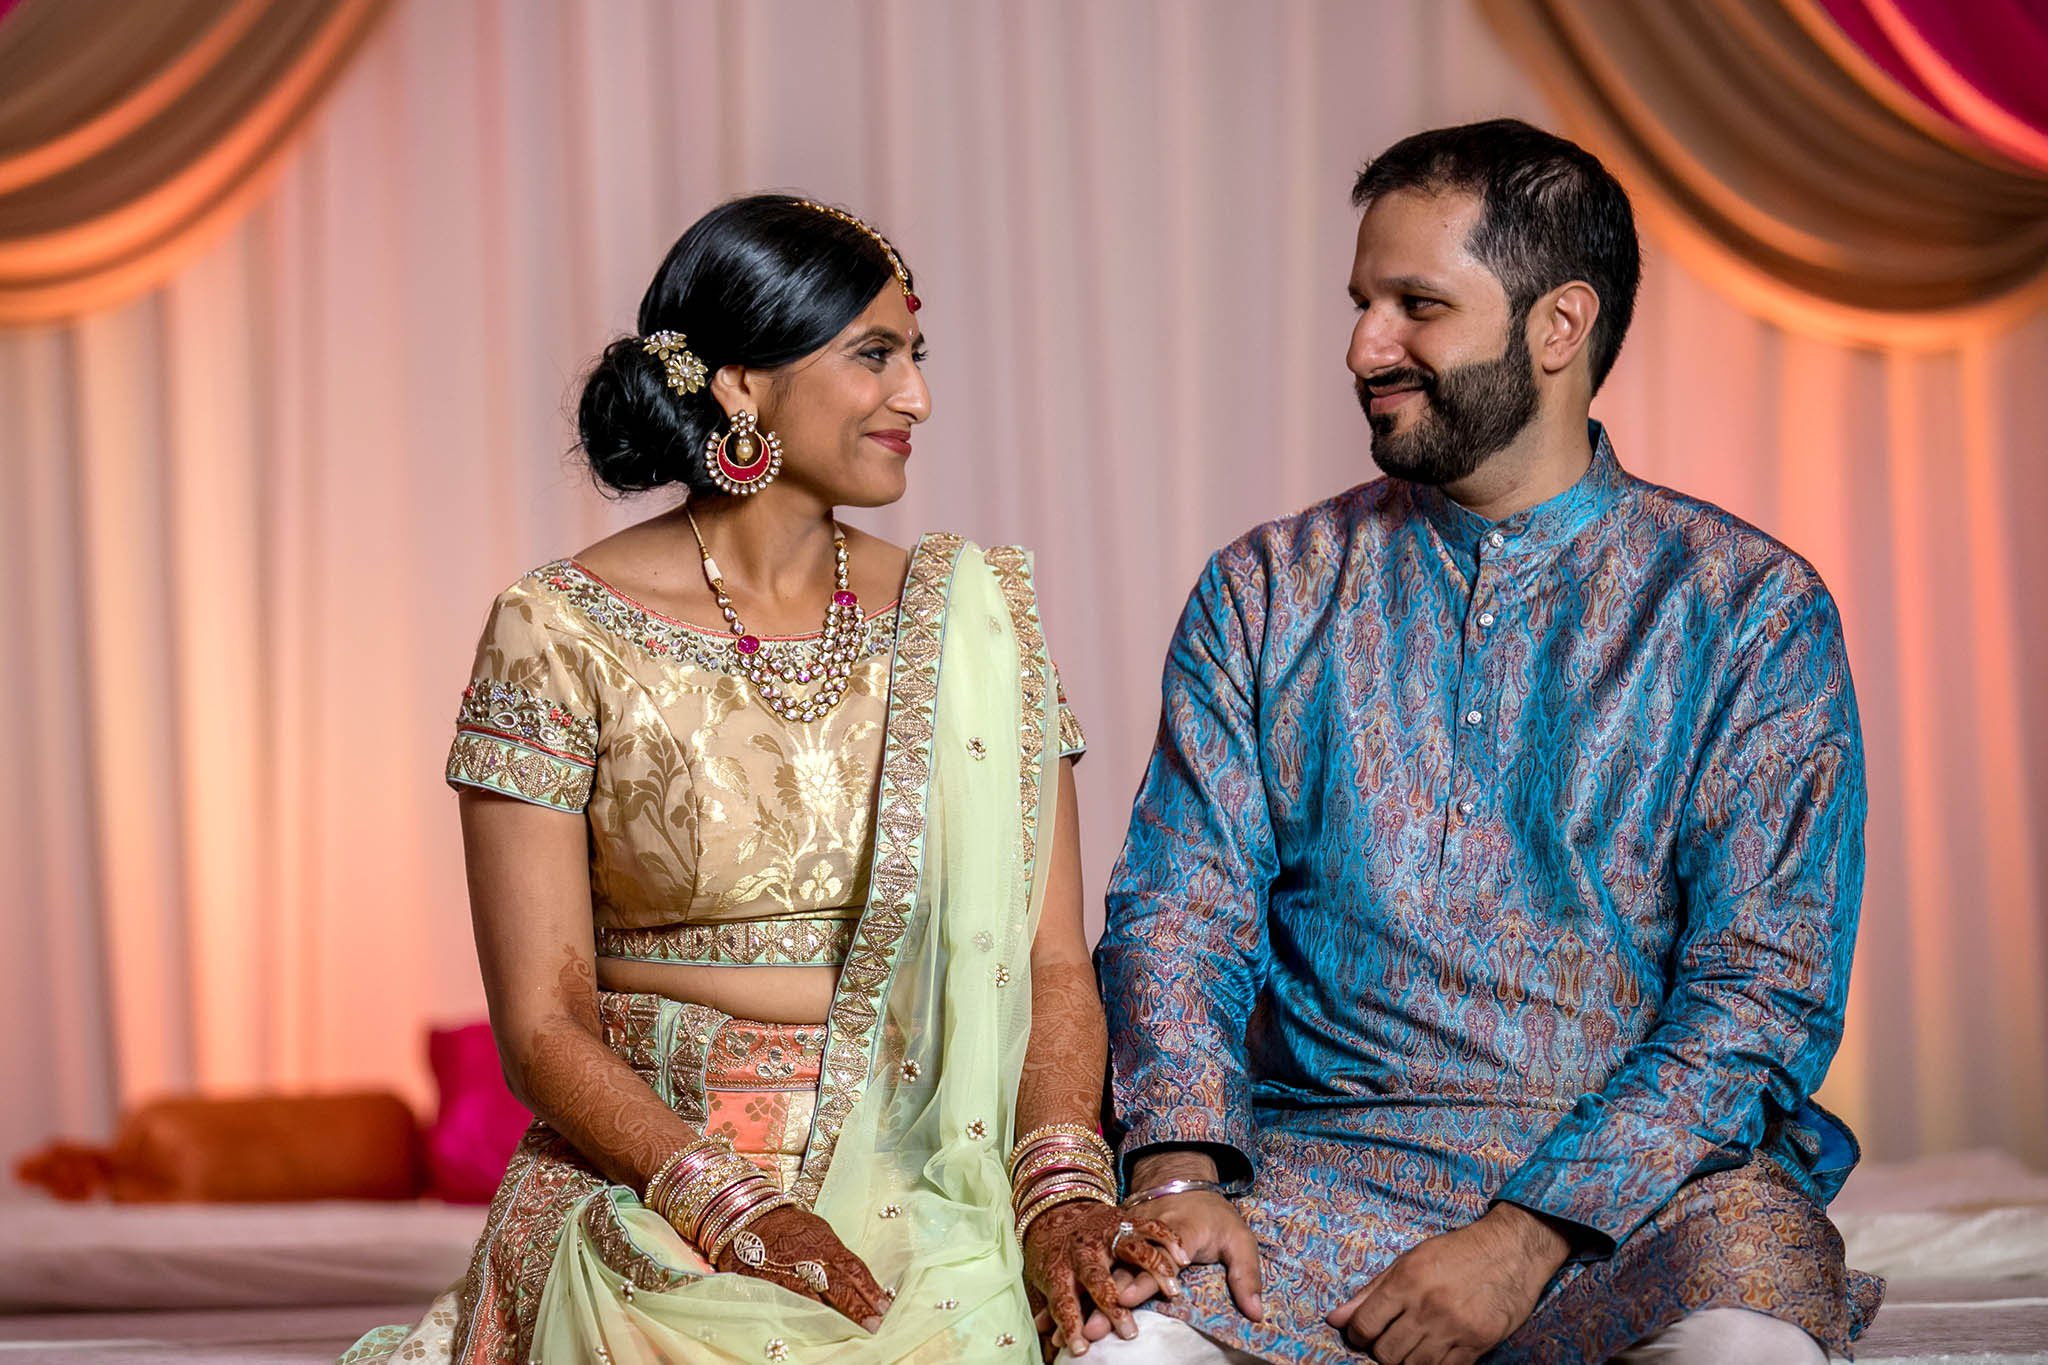 WS Photography Chicago Indian Wedding With Marmy And Dave